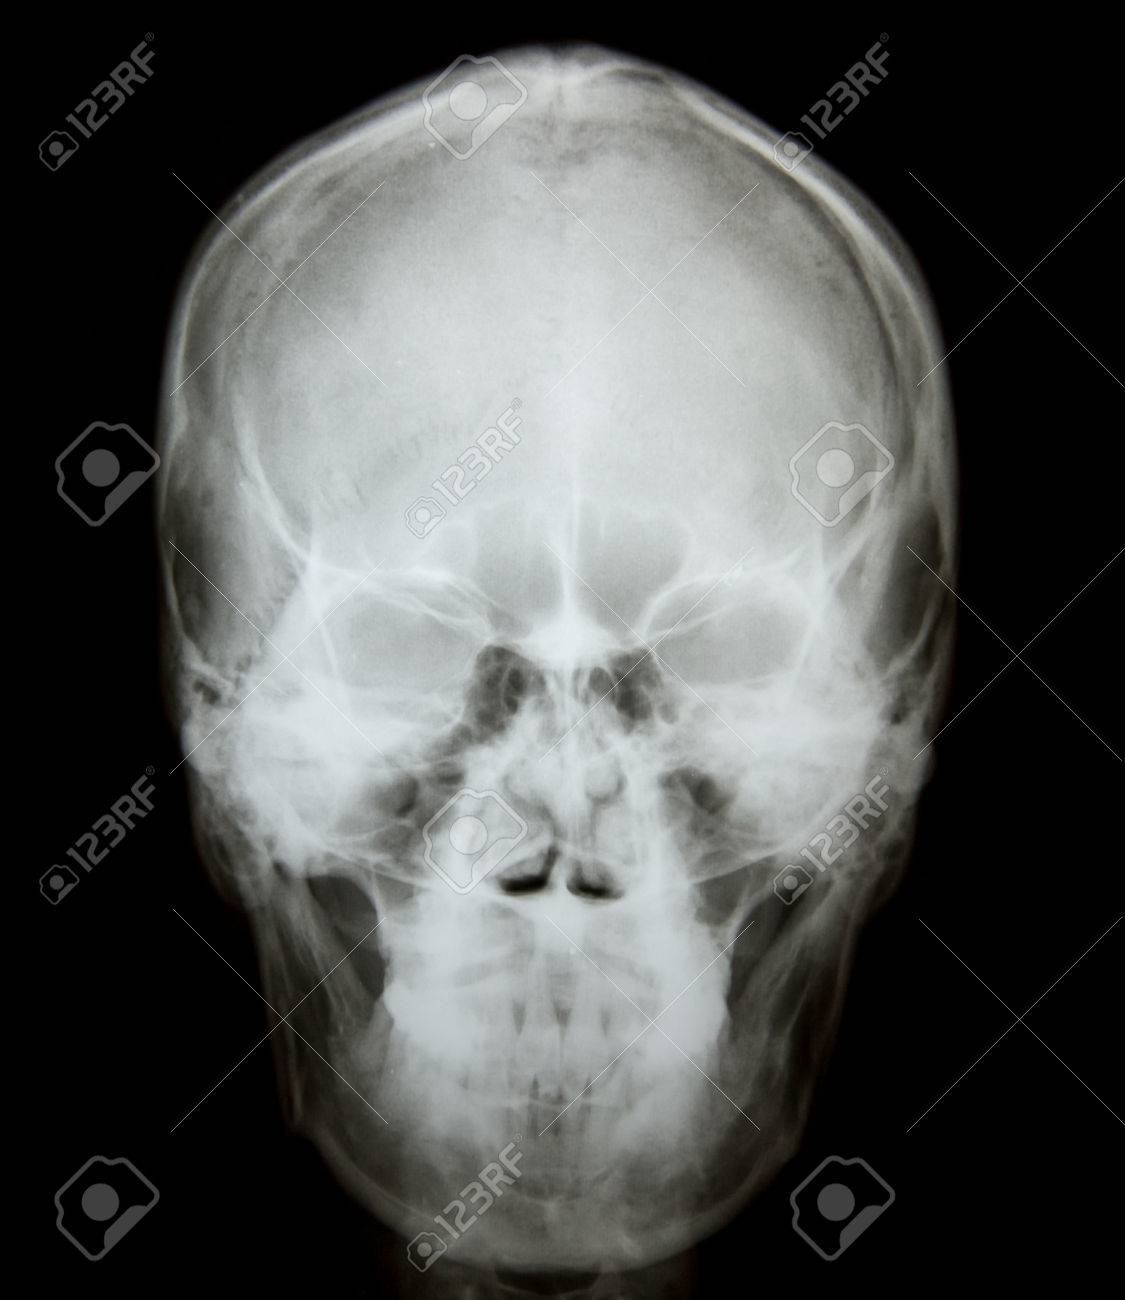 X Ray Of Nasal Bone Fracture After Accident Stock Photo, Picture And ...